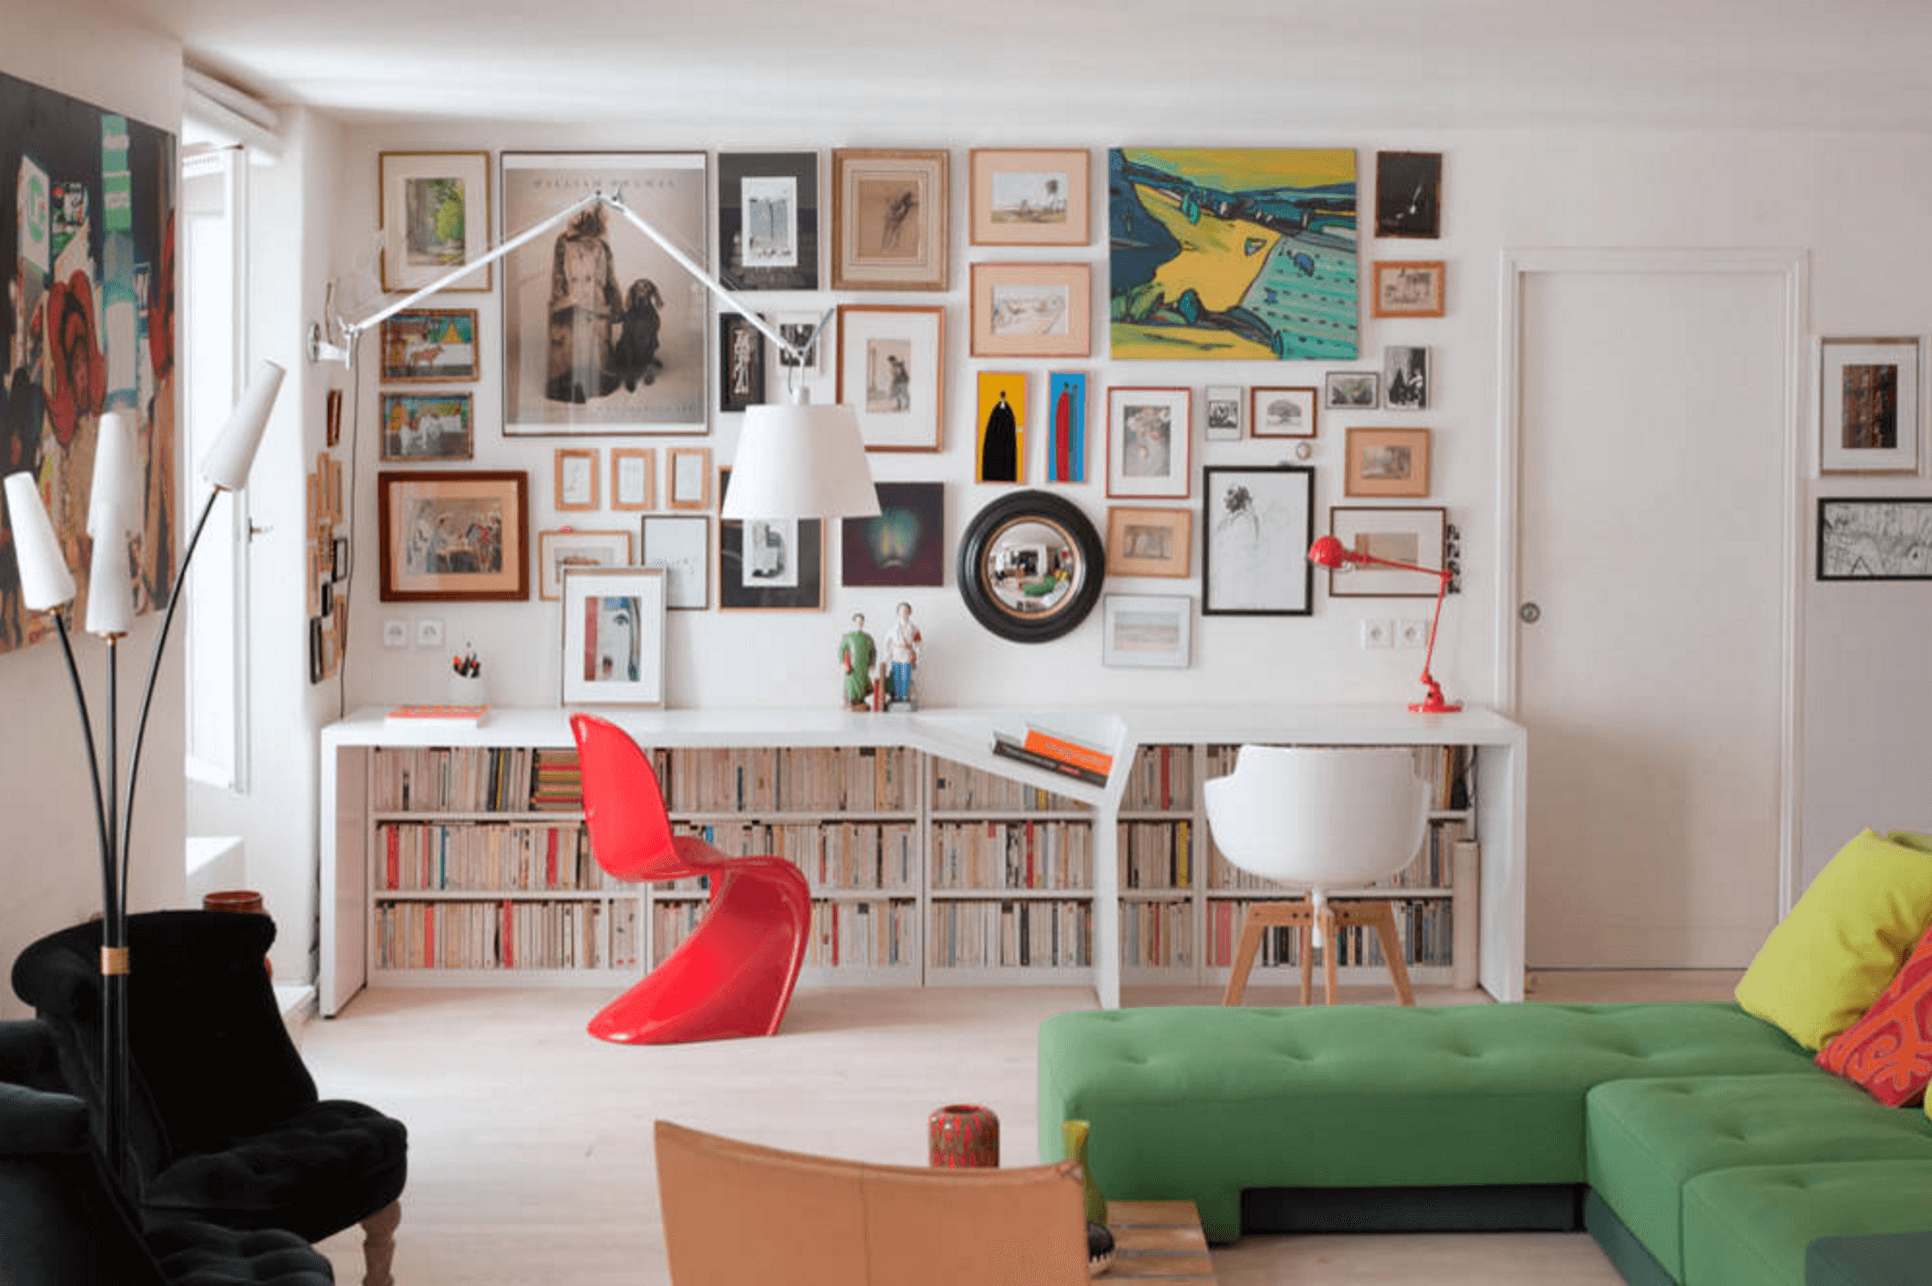 Home Office Decor Tips From Atom